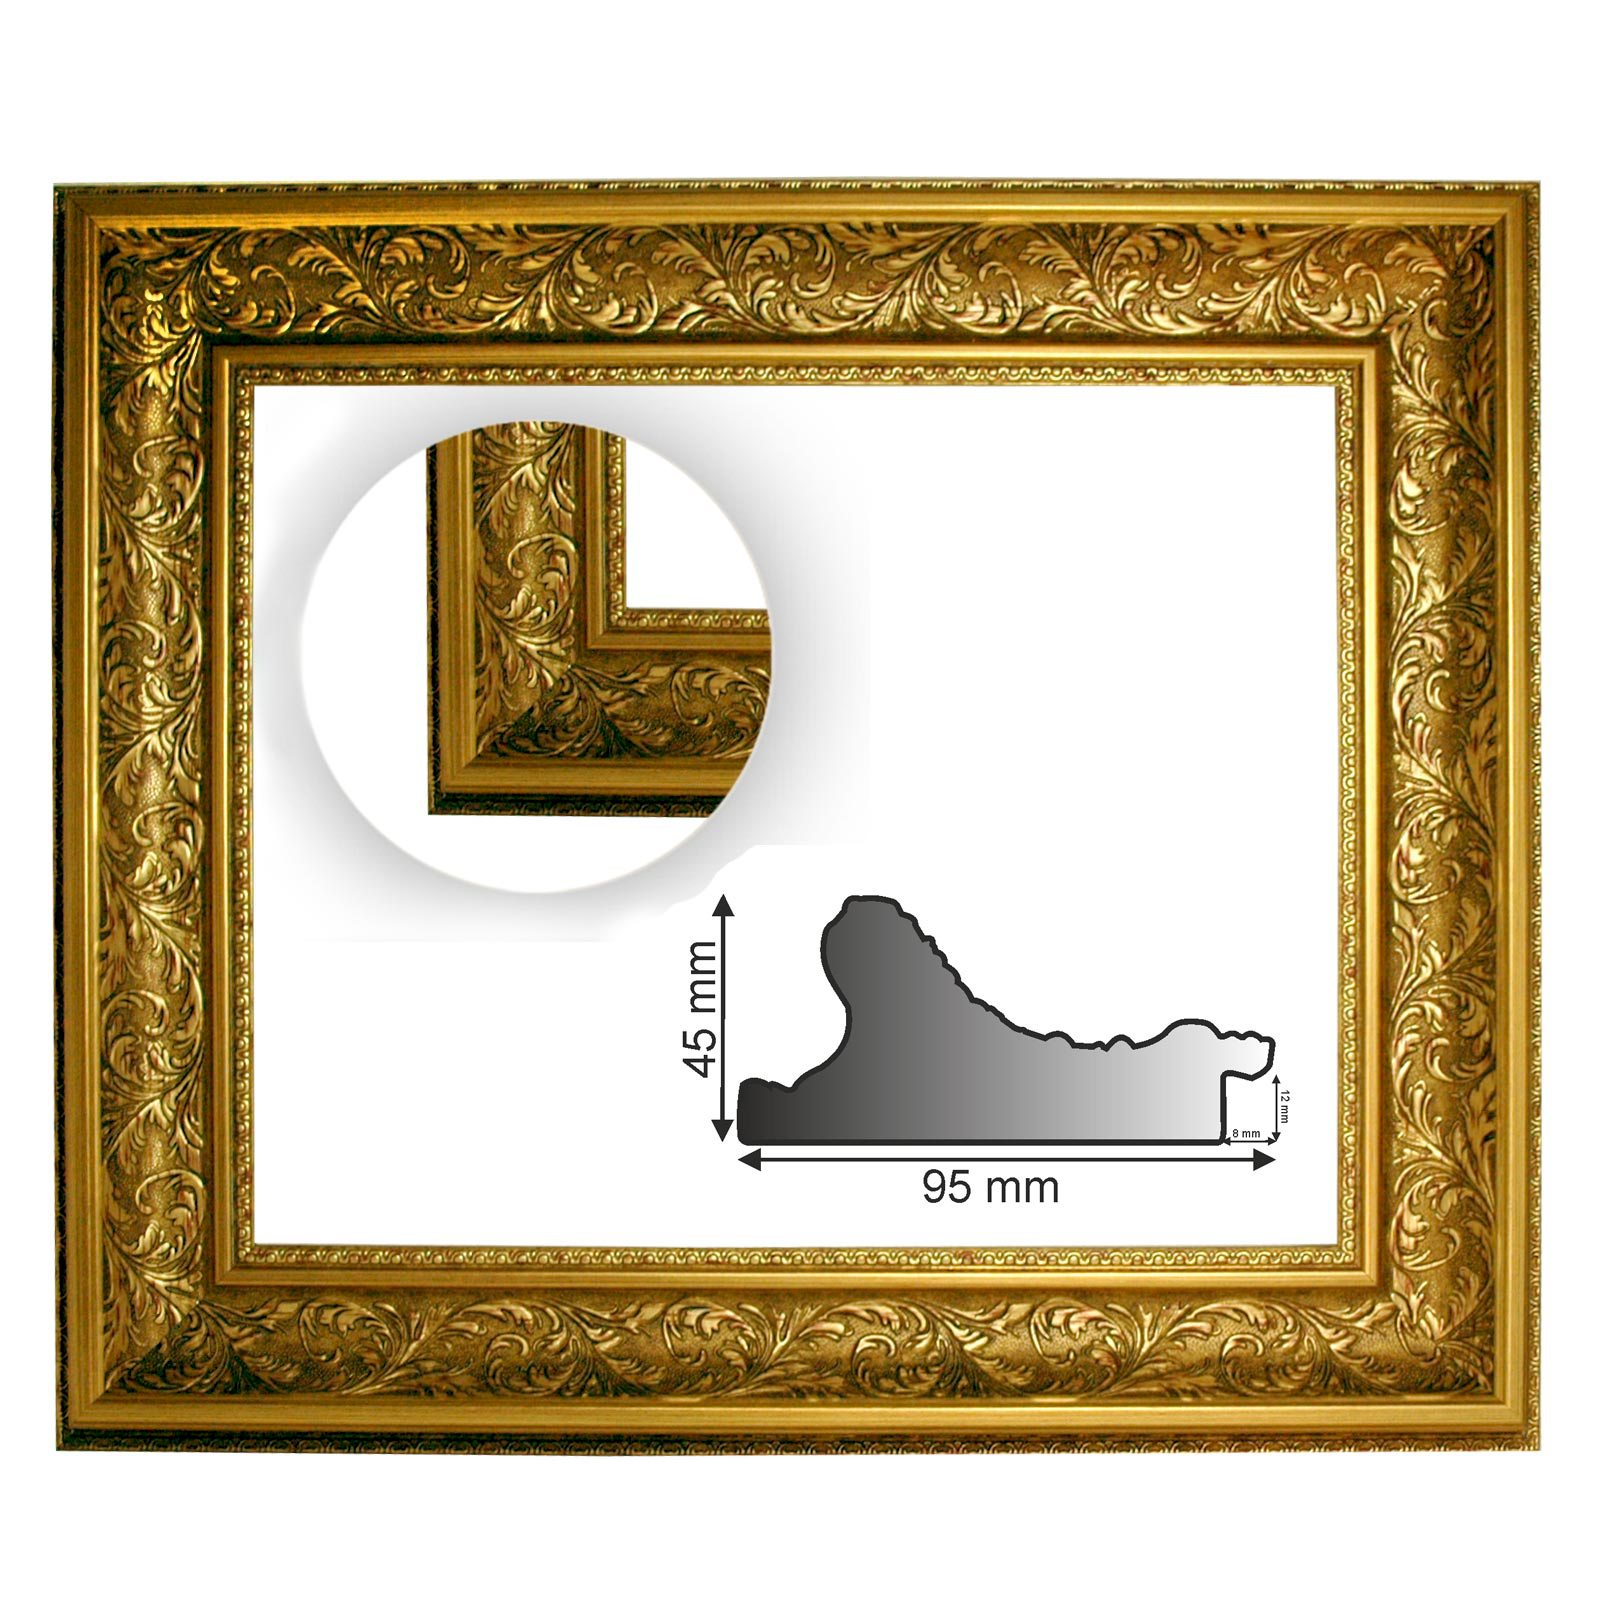 Baroque Frame 10943, Oro Gold Decorated, Series 992, as Cut, EMPTY ...